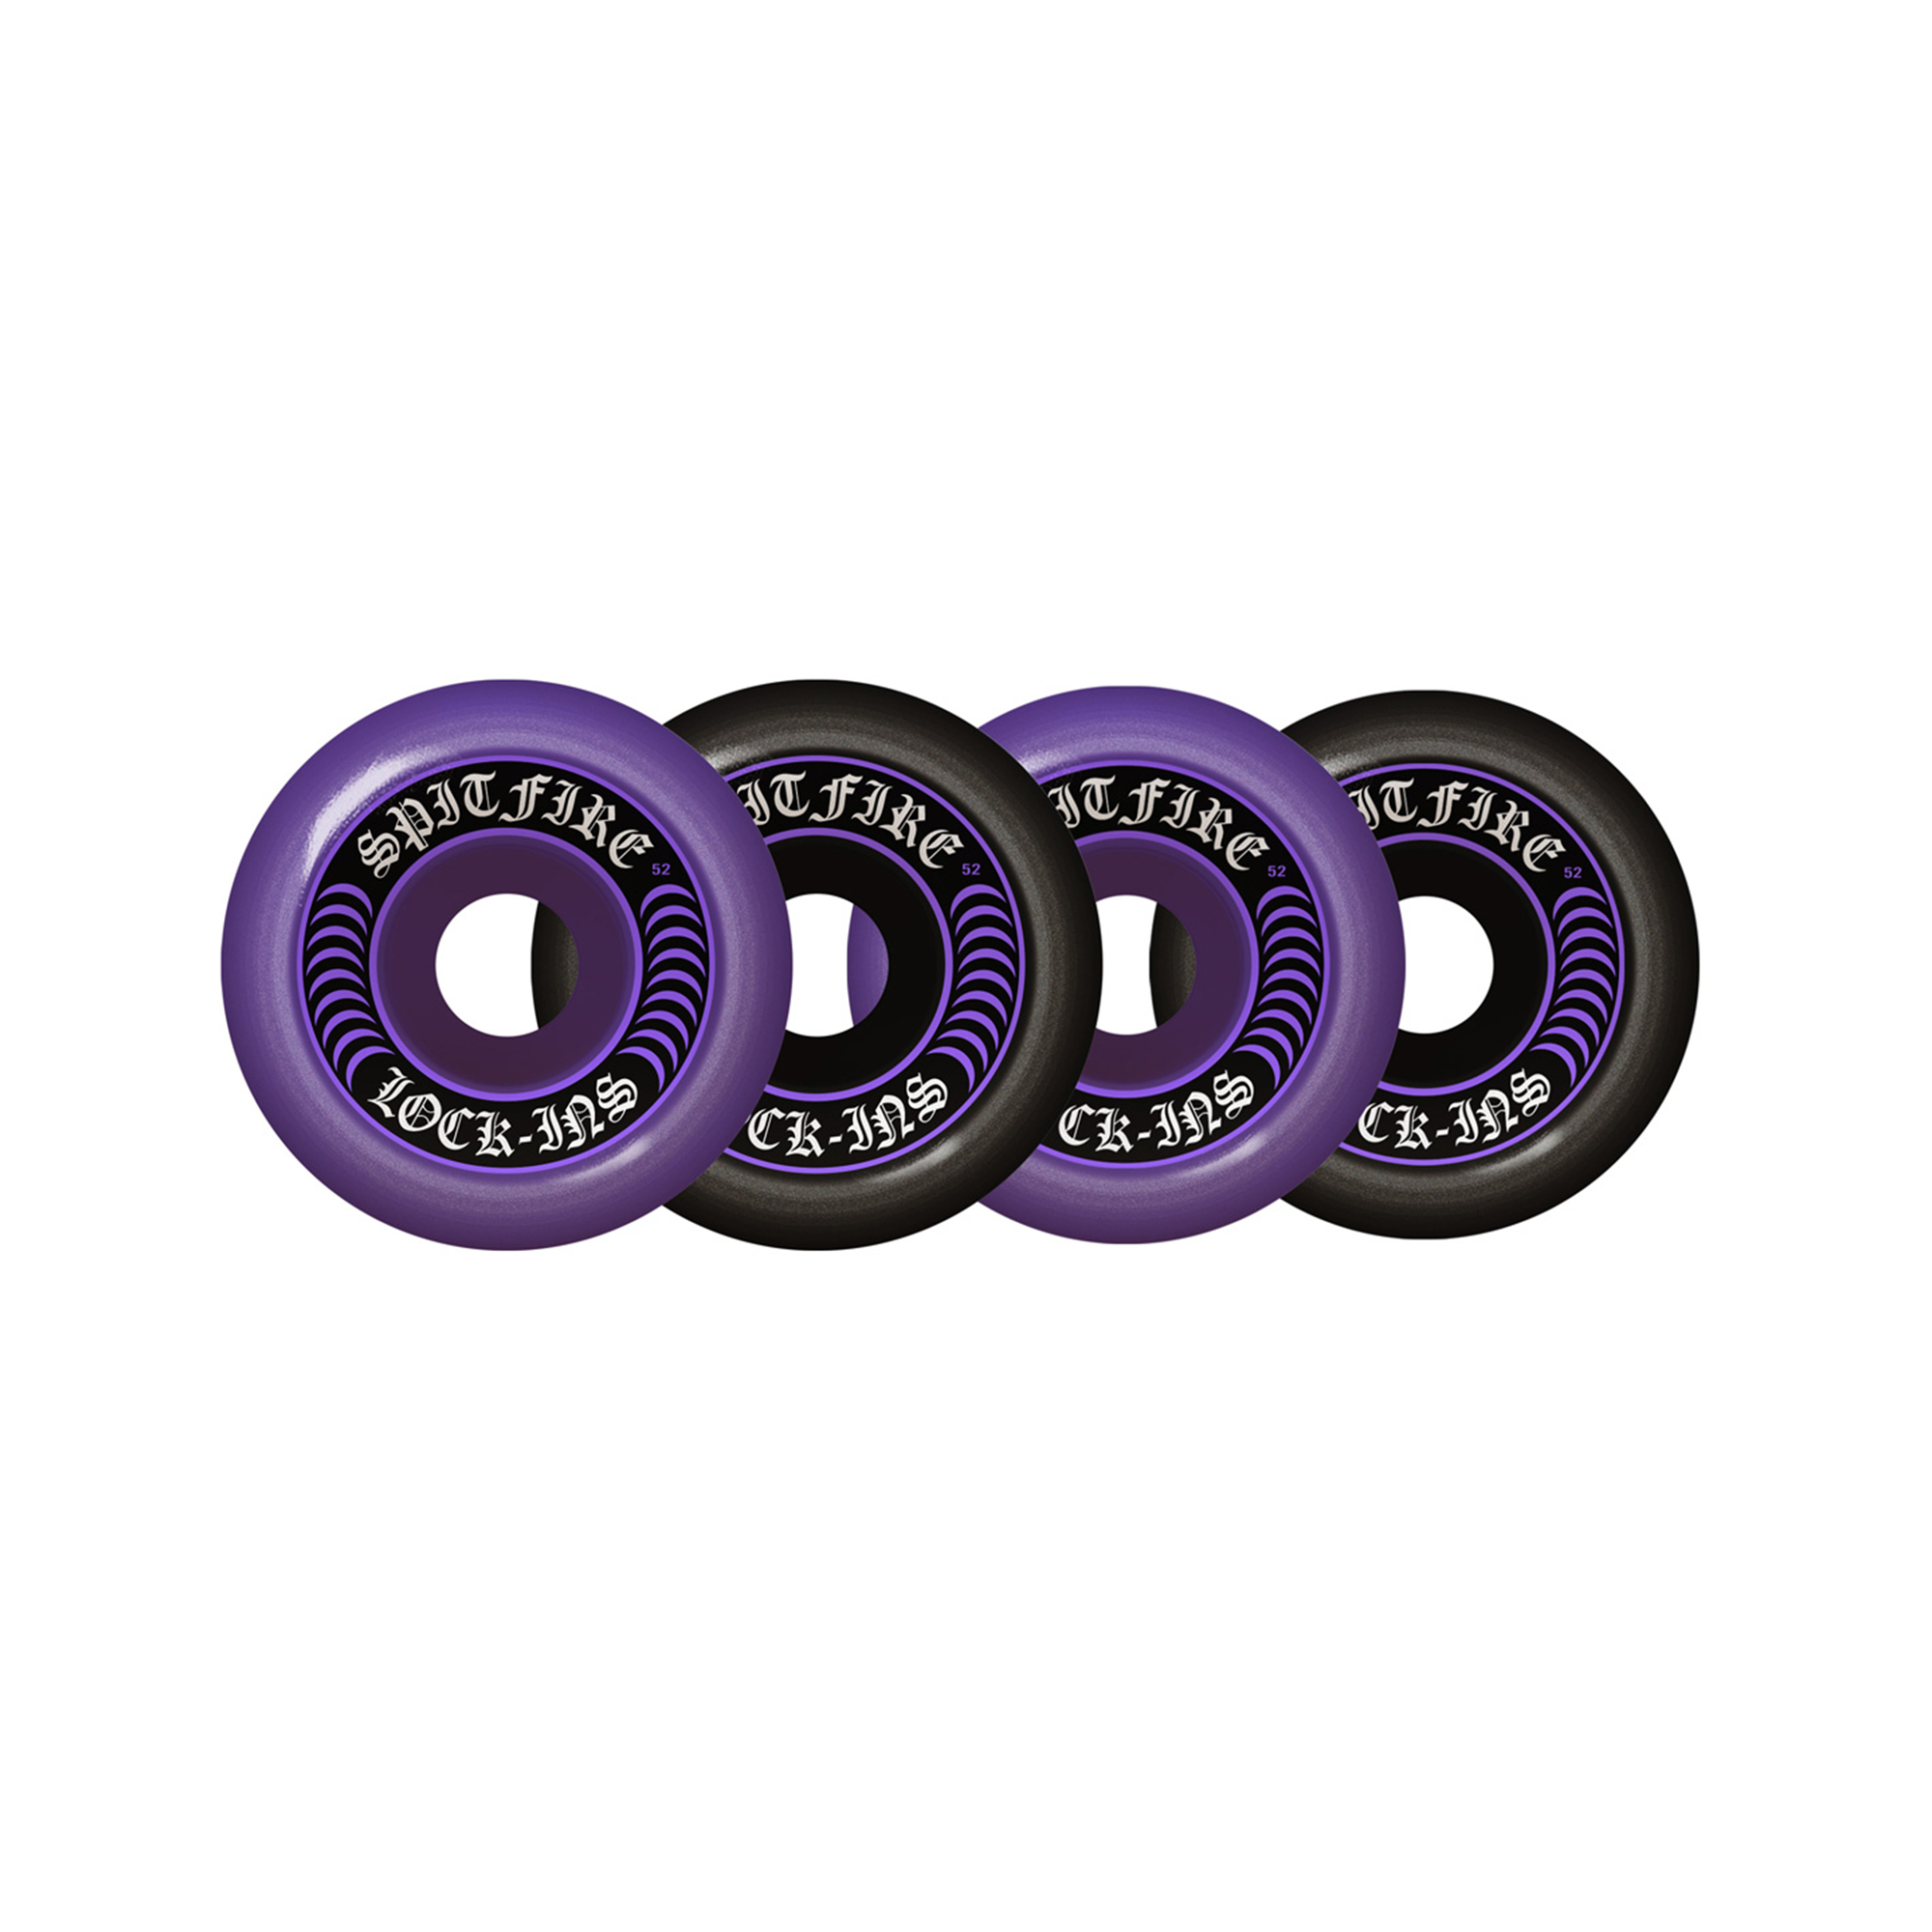 Spitfire Formula Four Lock In 101 Wheels Product Photo #3